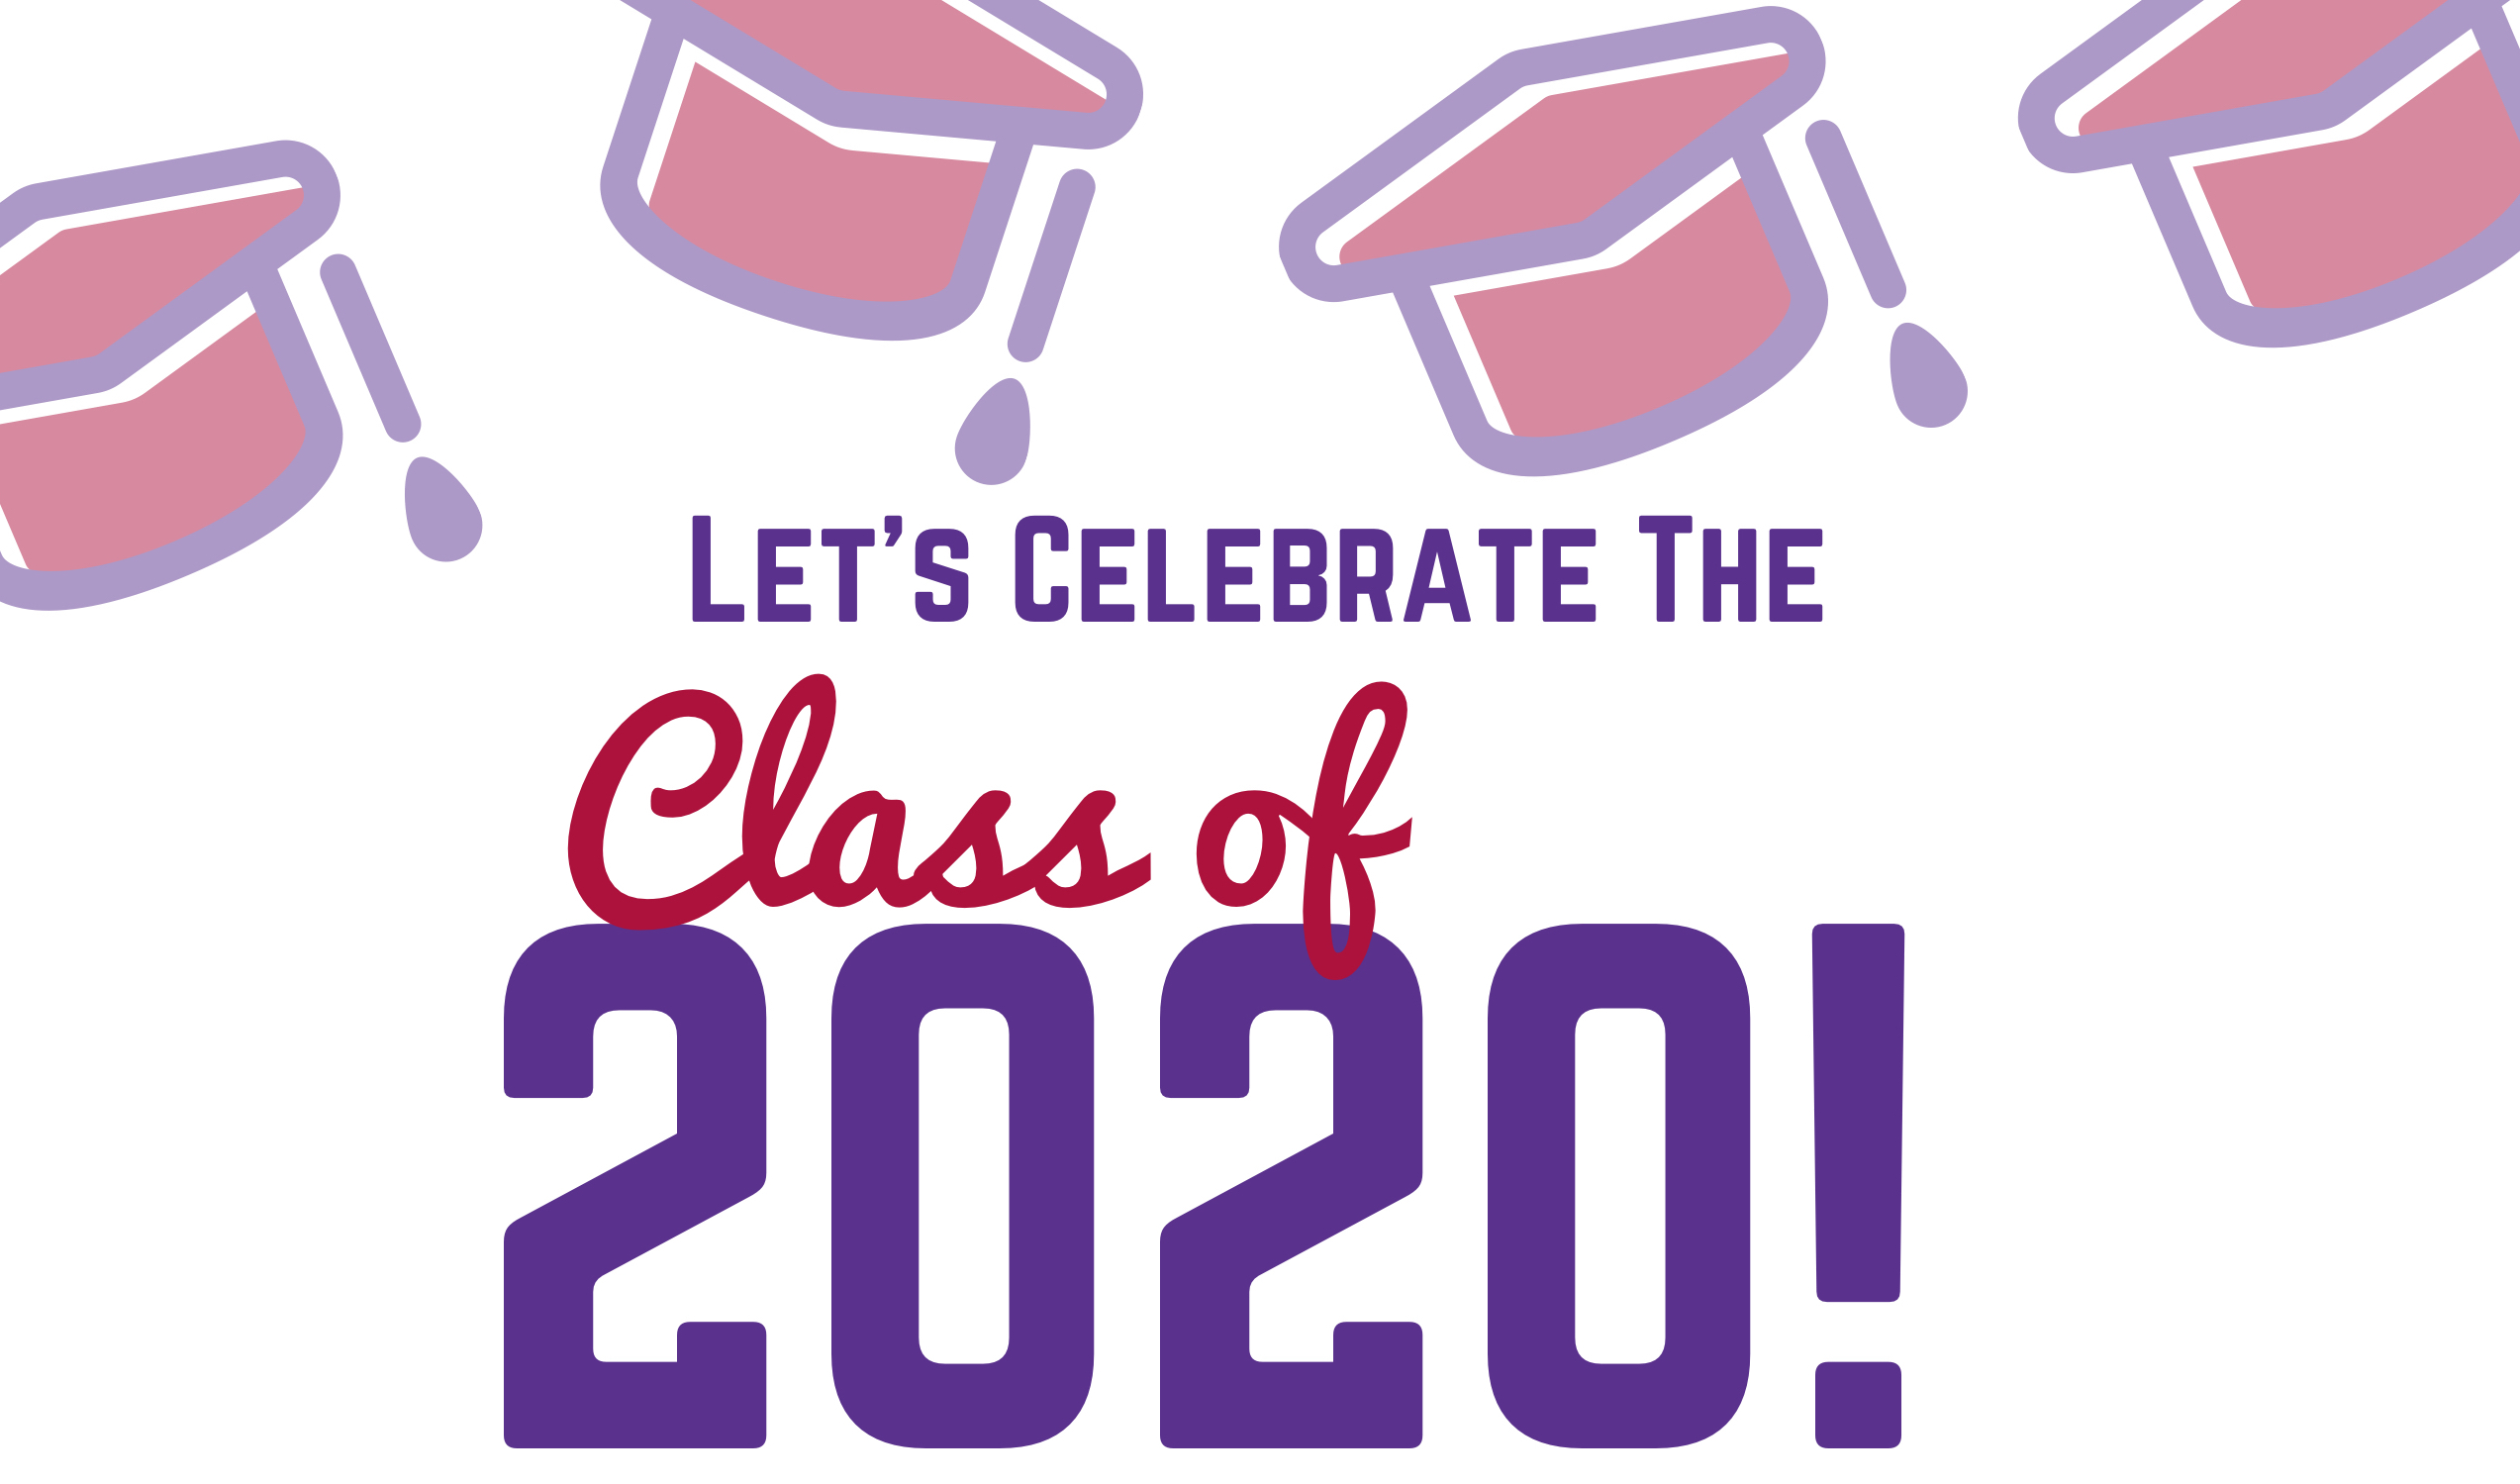 let's celebrate the class of 2020